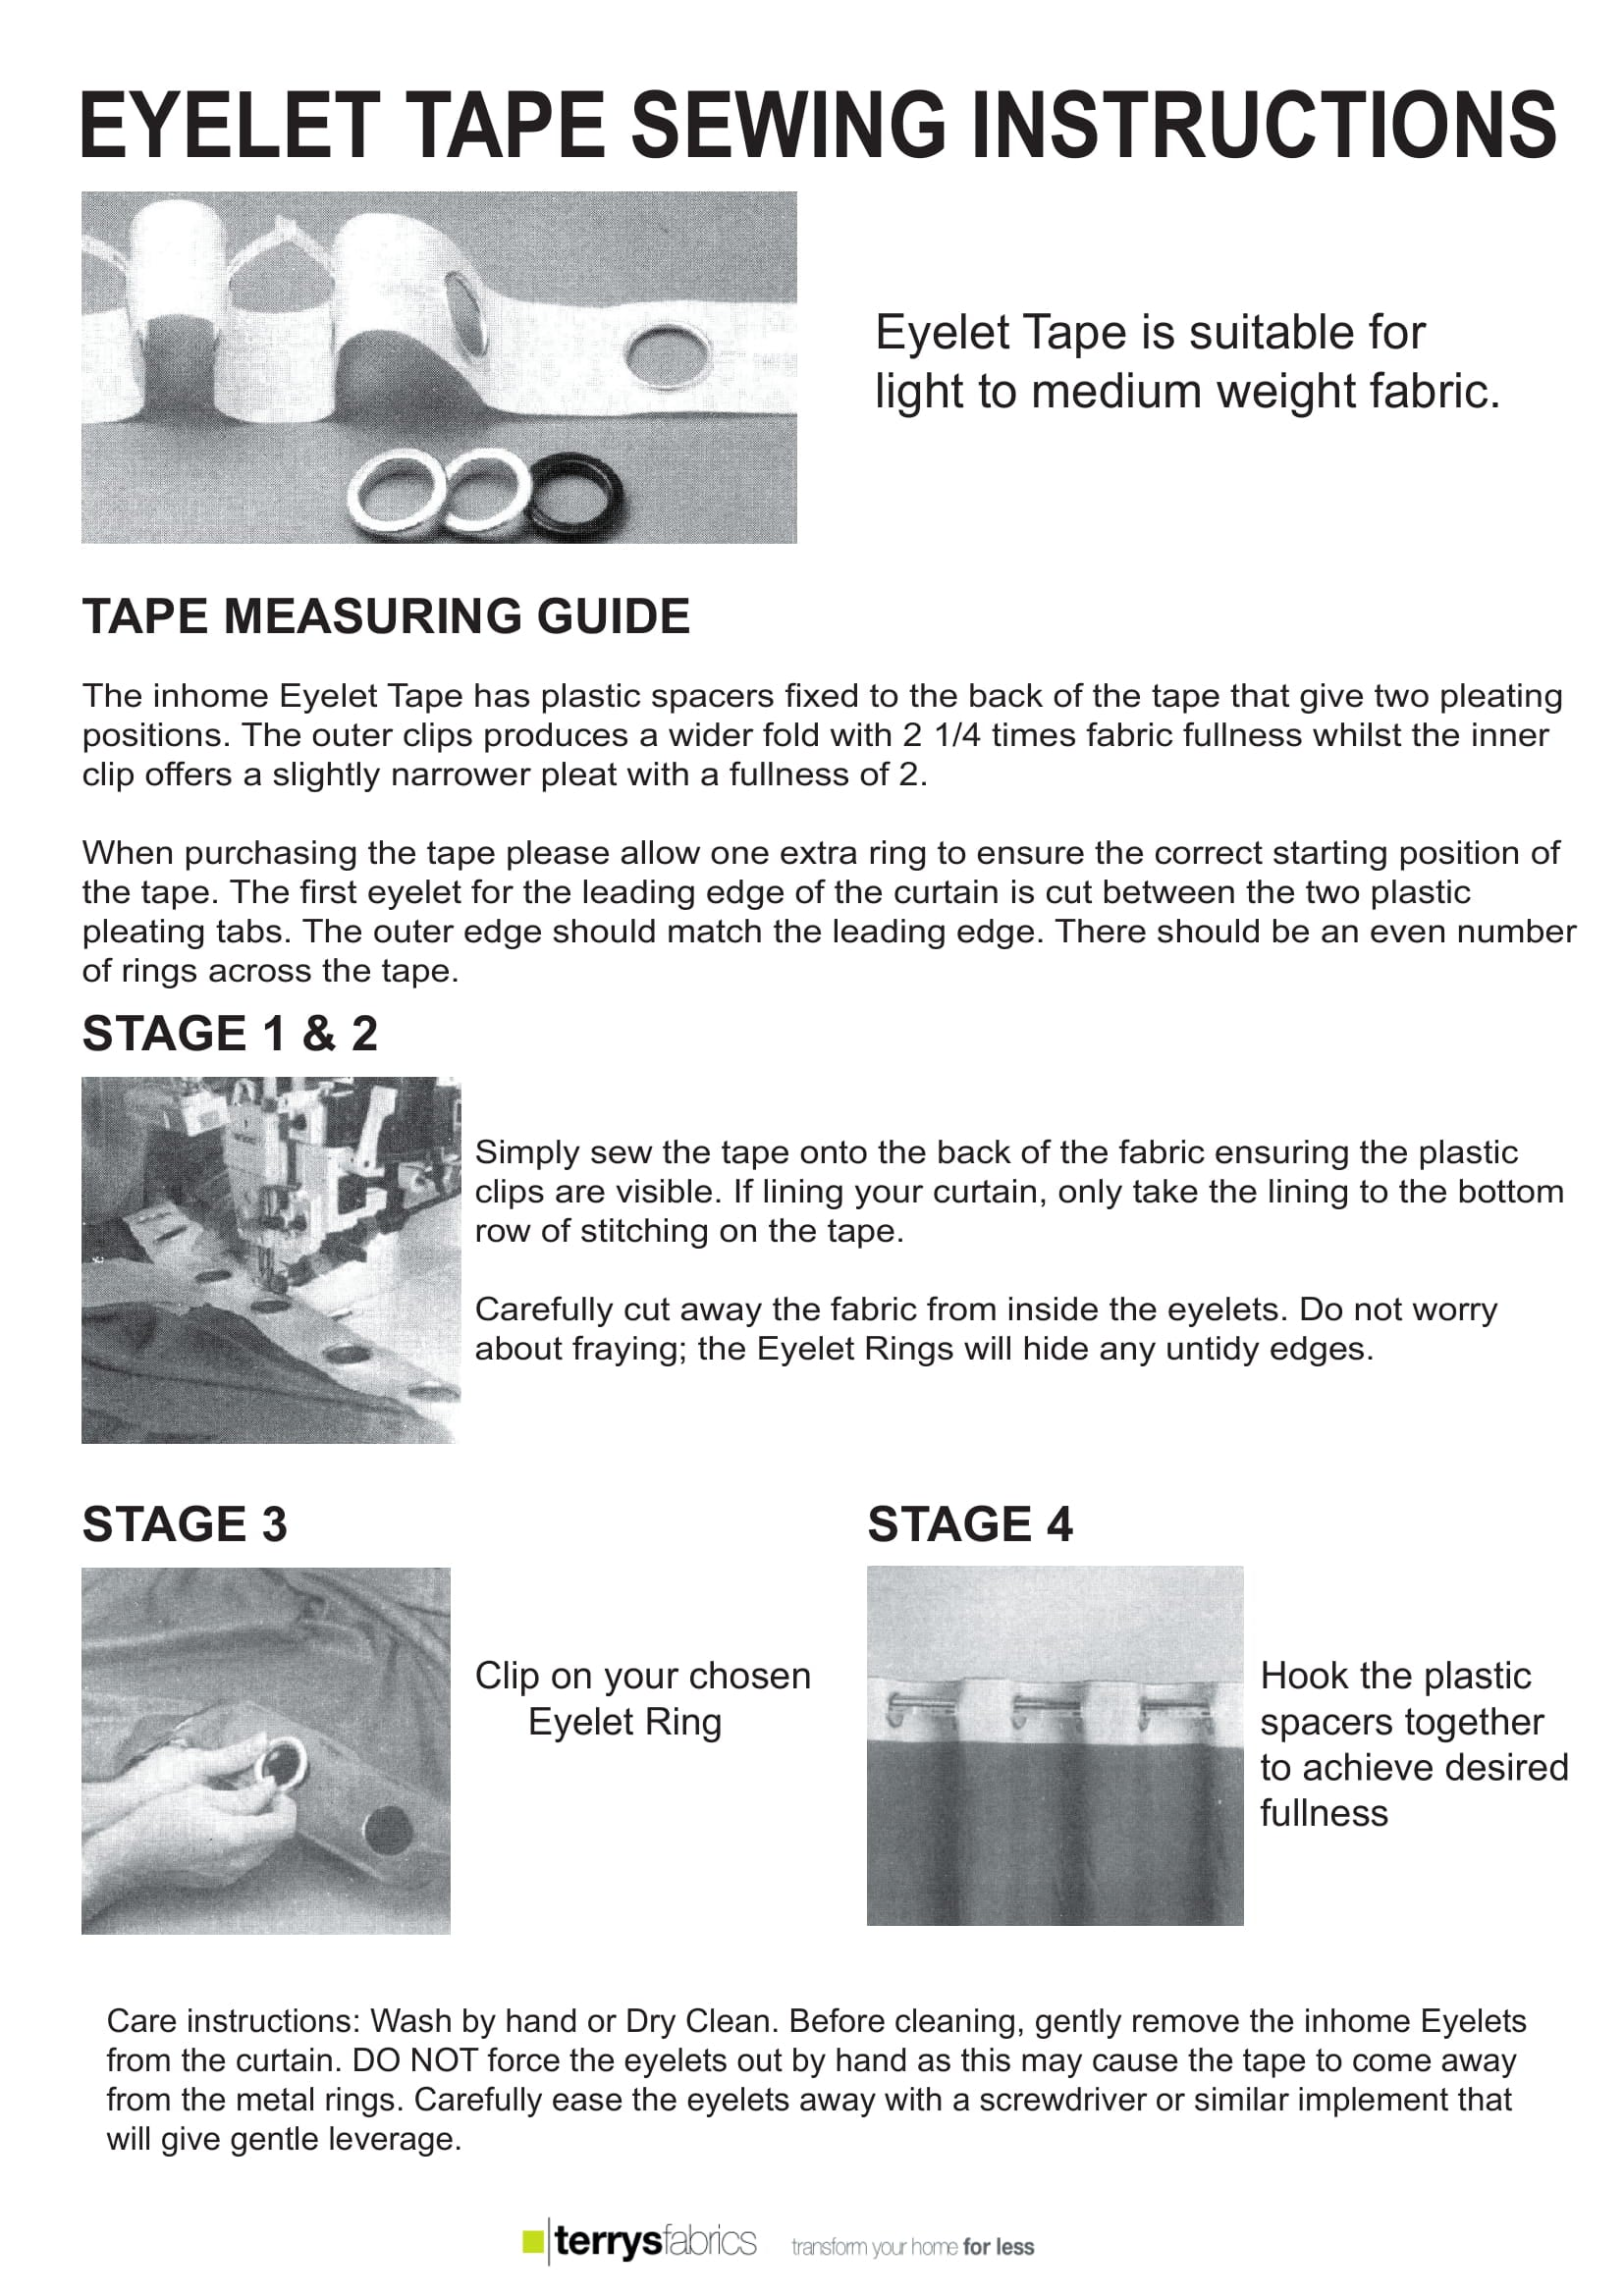 Eyelet Tape Fitting Instructions